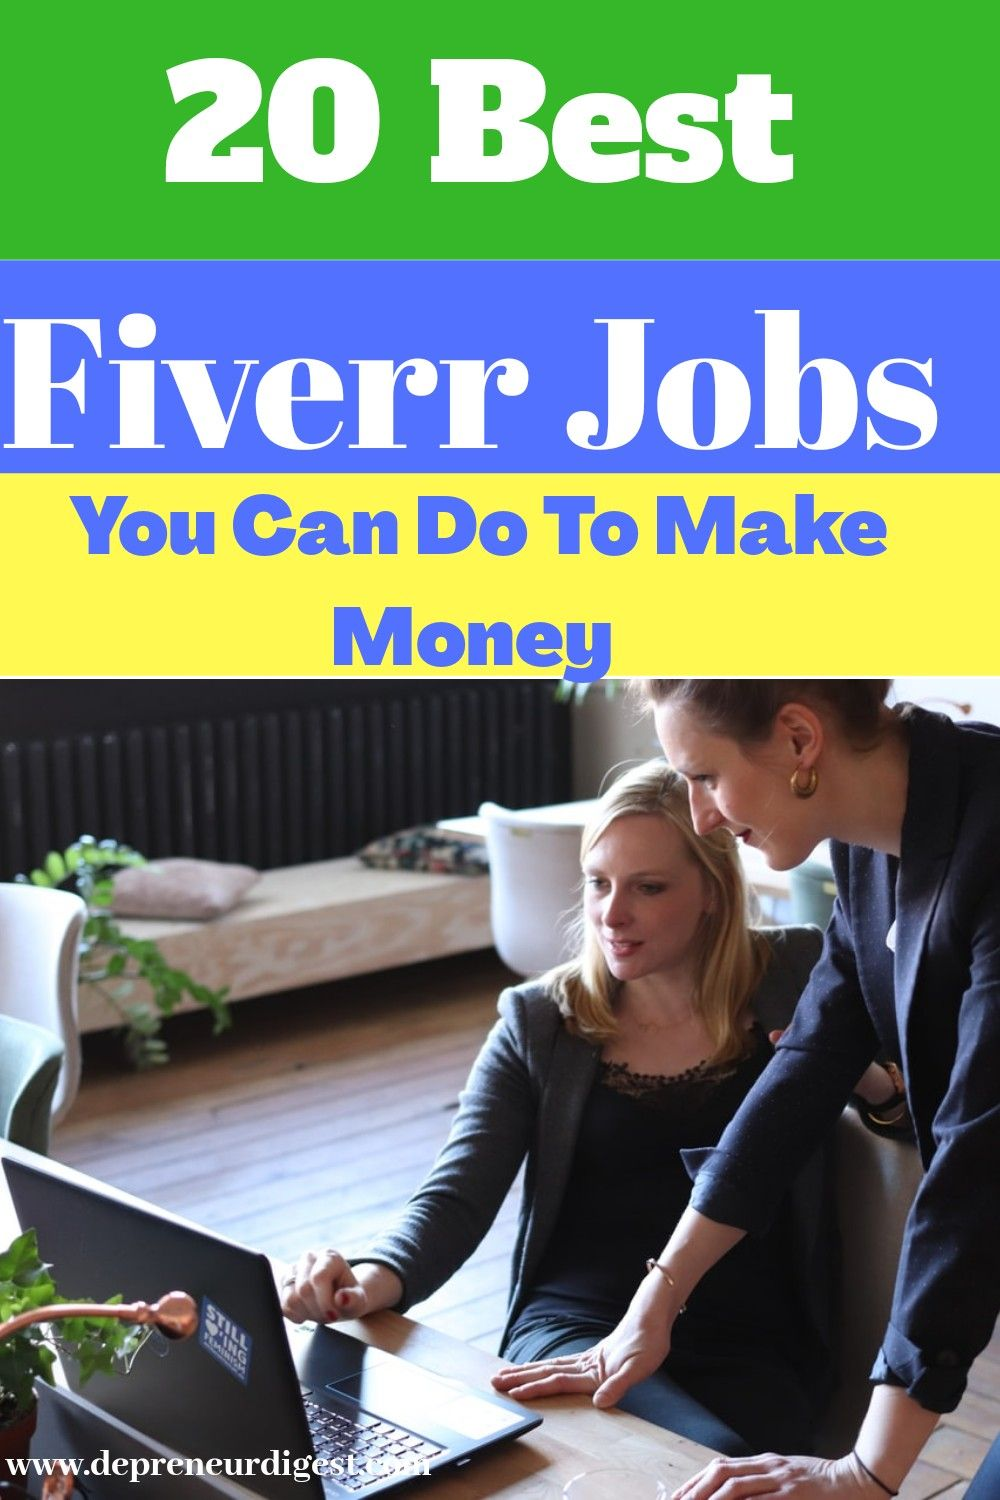 Pin on Fiverr gigs ideas